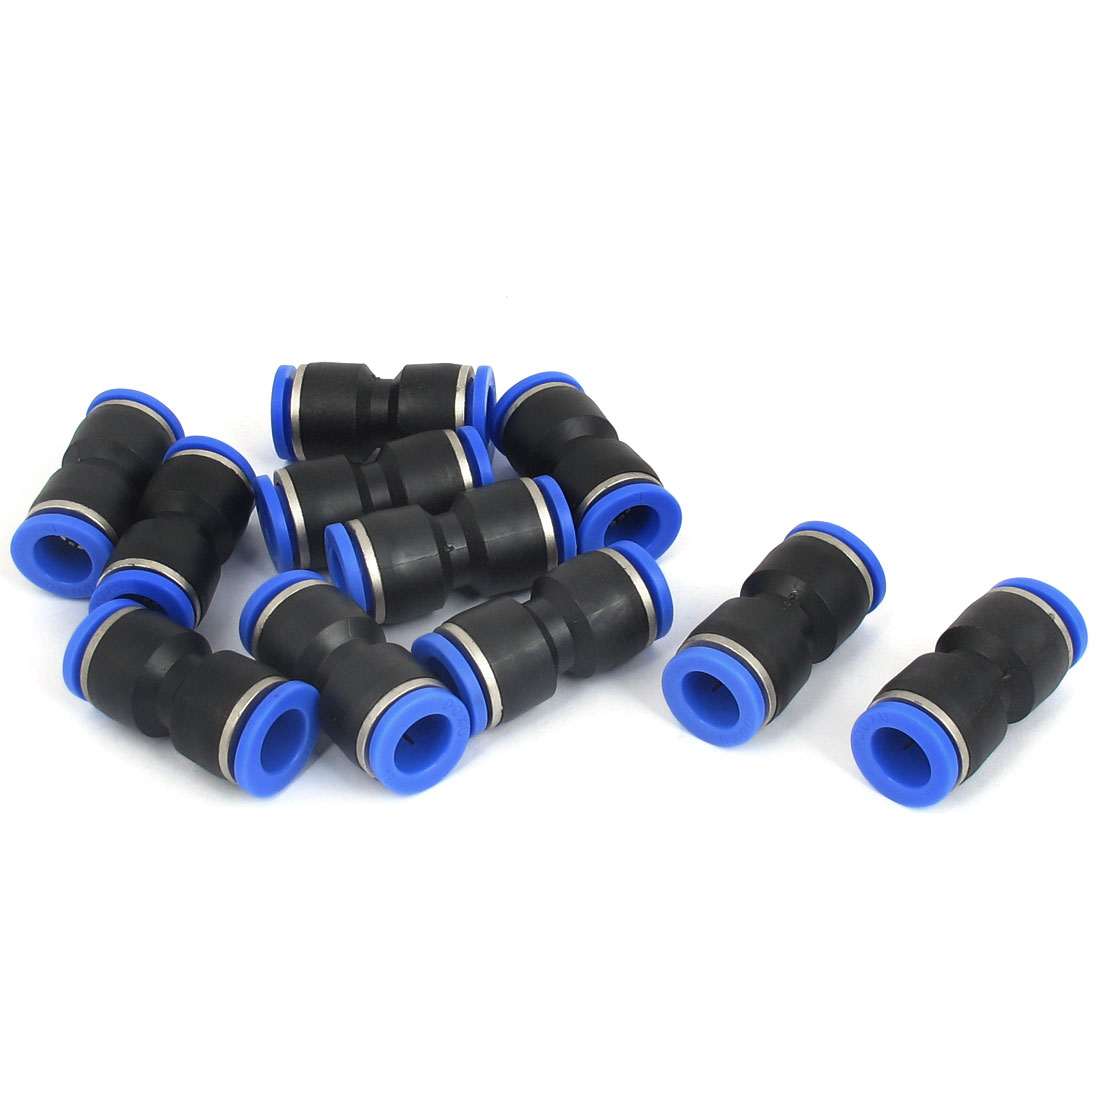 12mm to 12mm Pneumatic Connection Straight Push in Fitting 11 Pcs